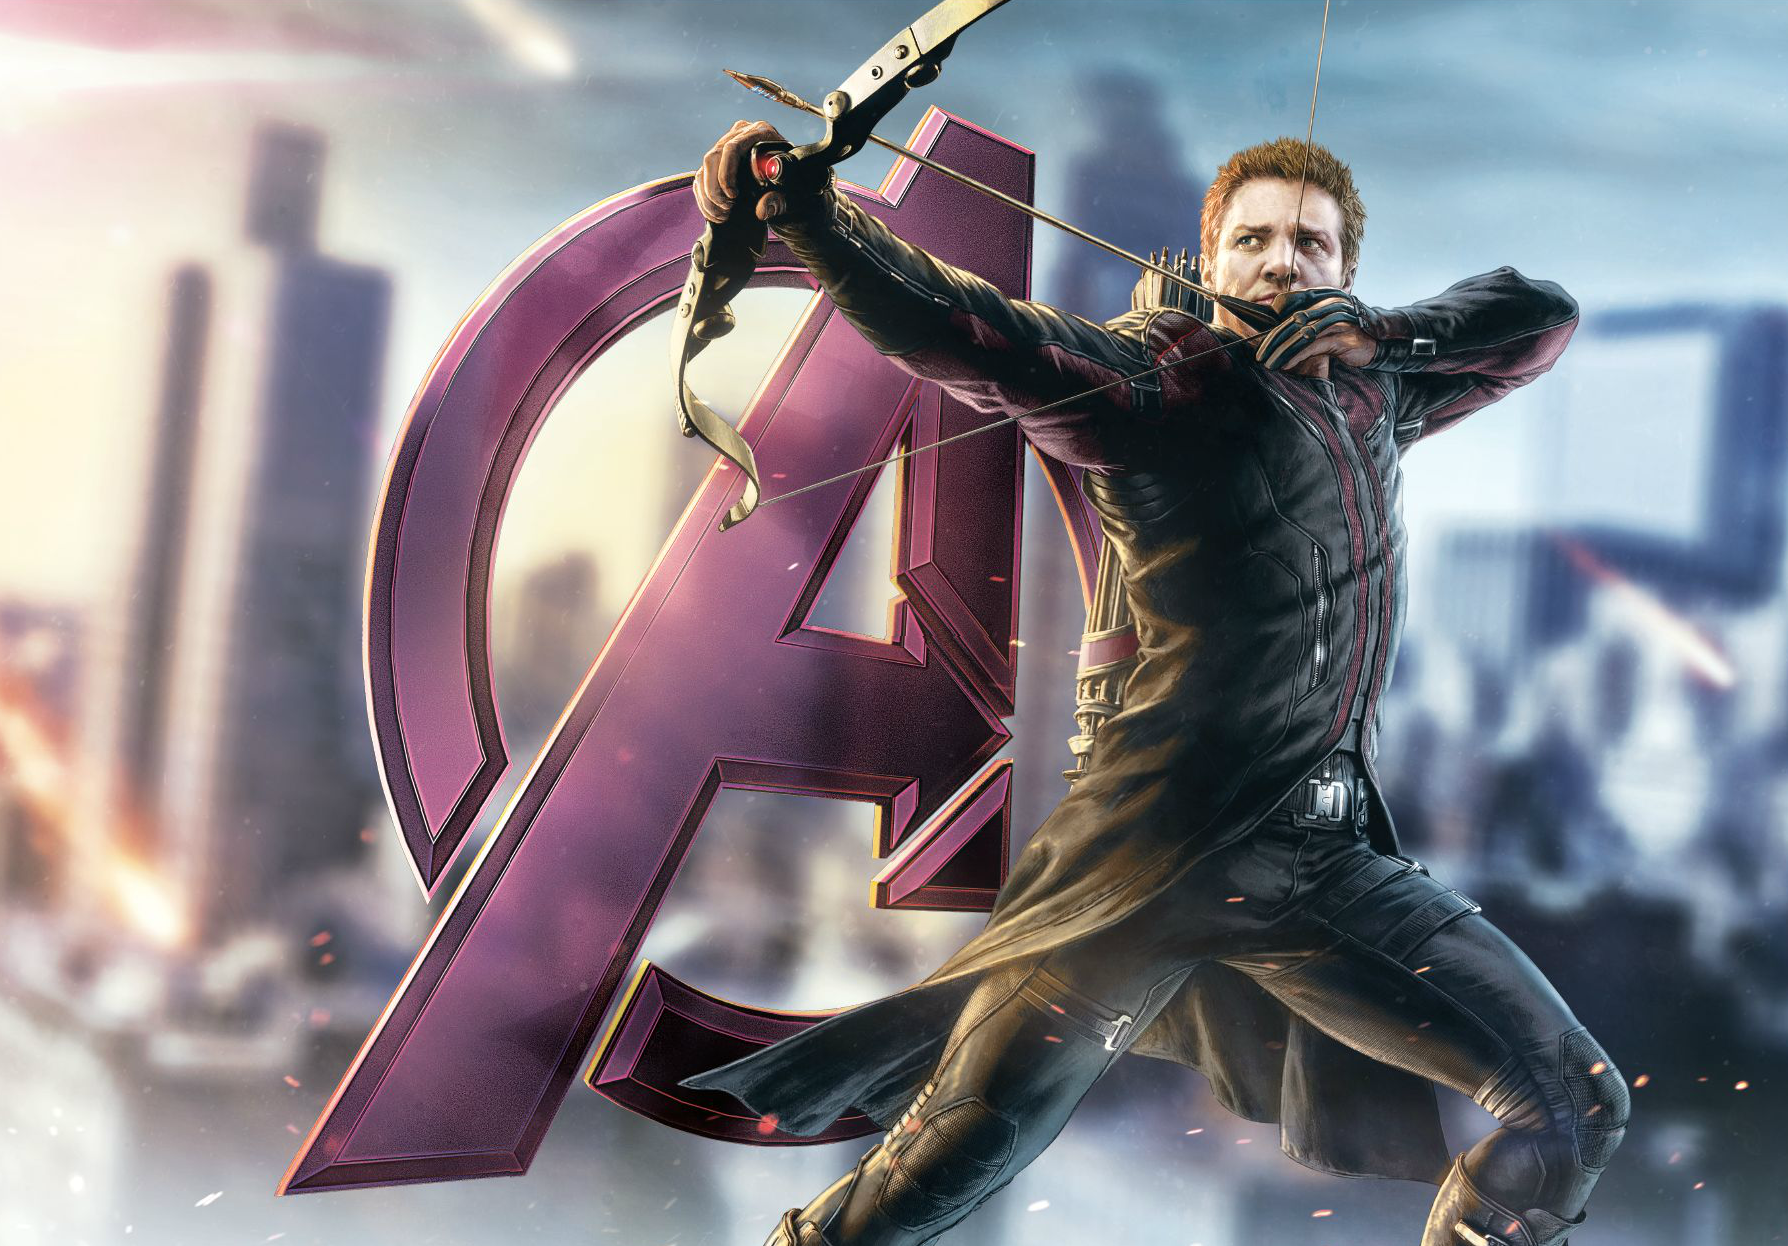 Hawkeye AVENGERS AGE OF ULTRON Wall Decal Promo Art. コミコン